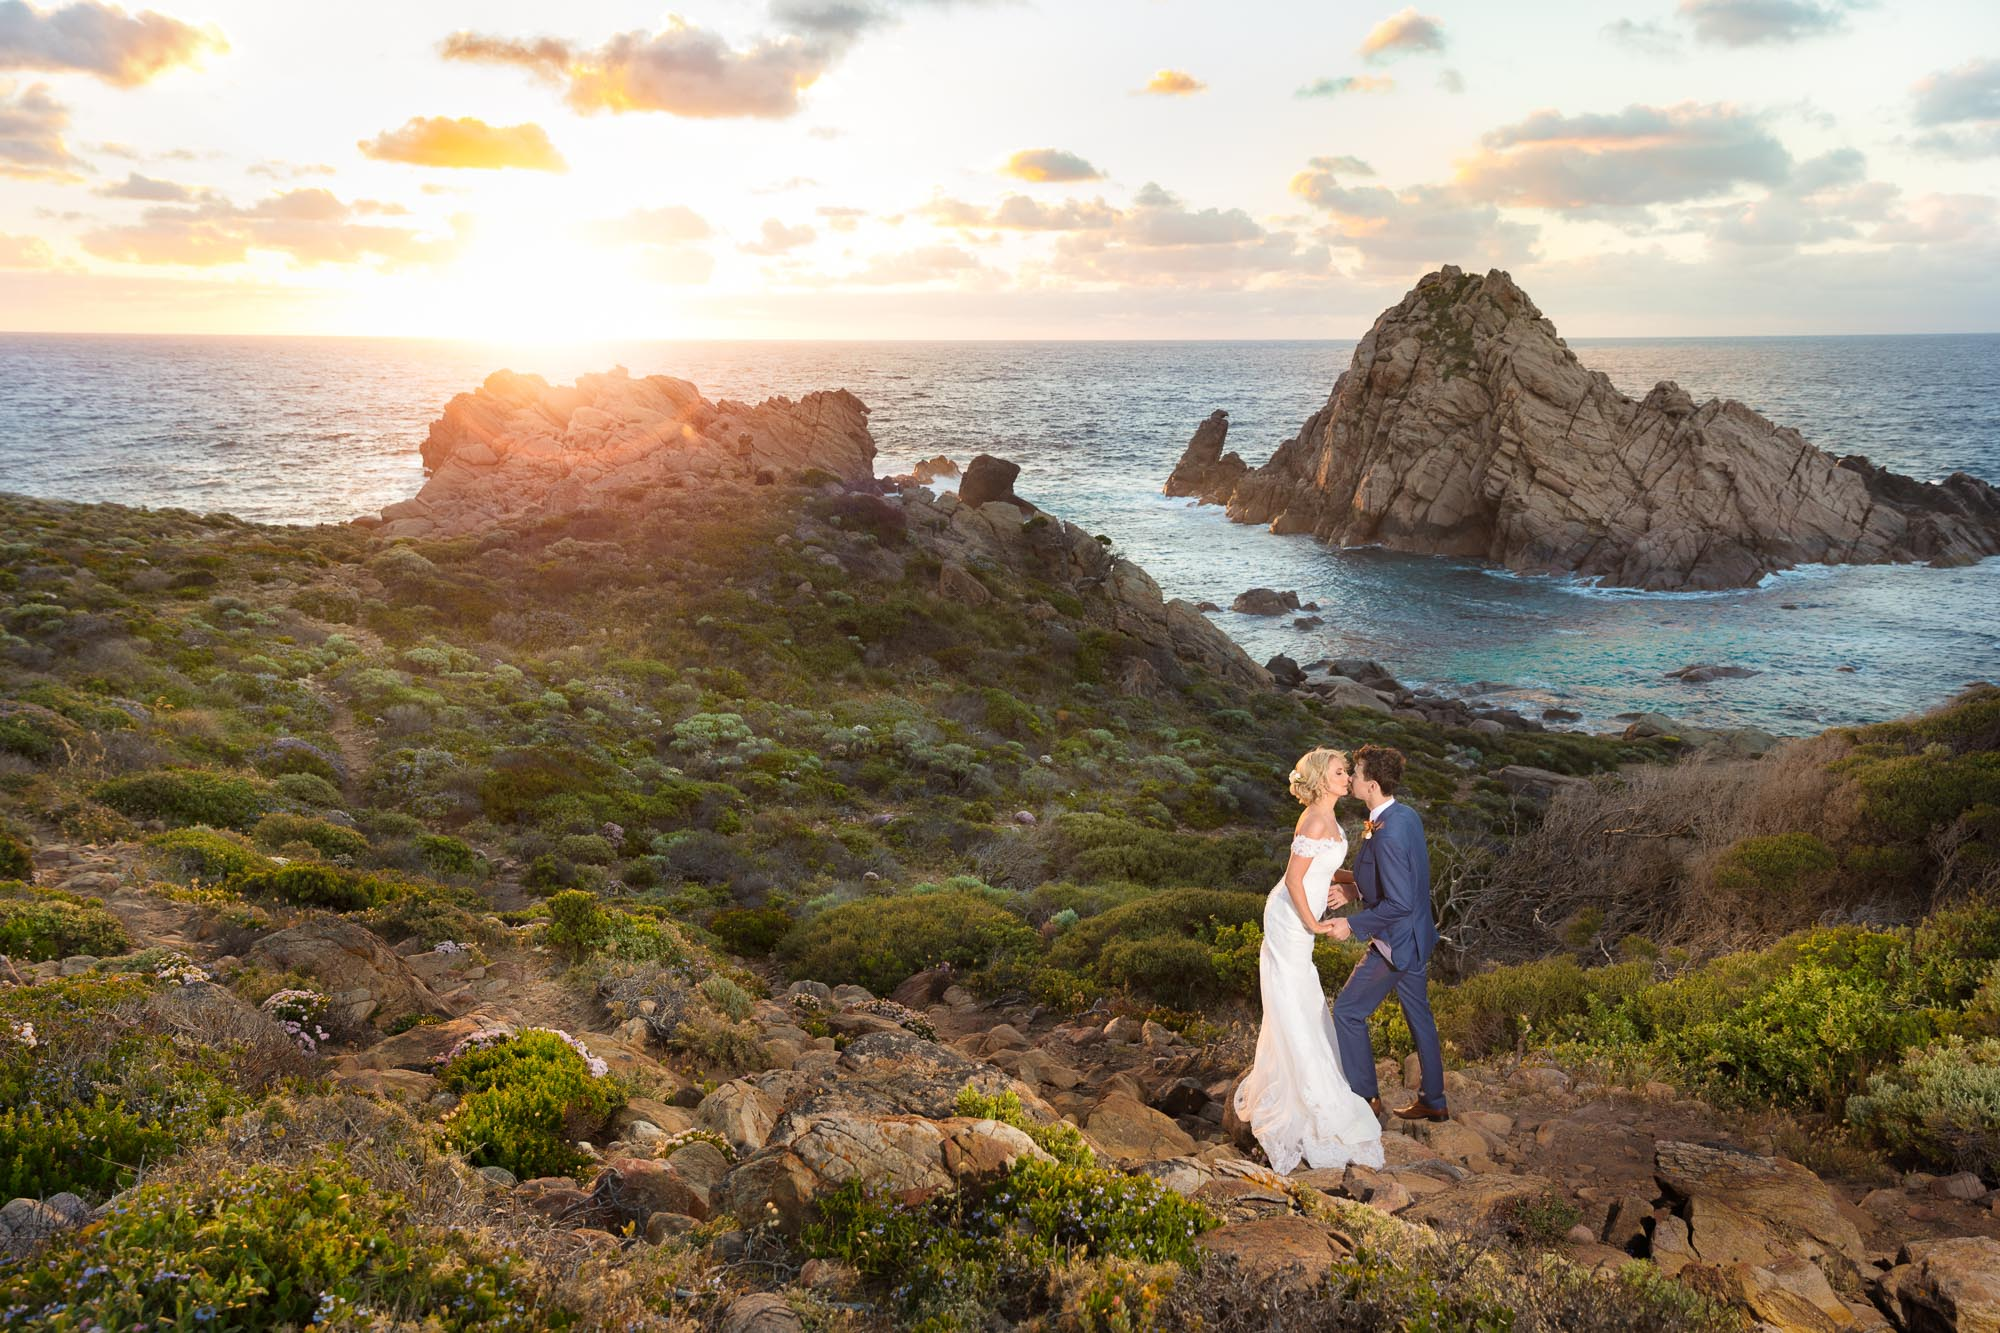 By many regarded as one of the nicest Wedding Portrait ever done at the Sugar Loaf Rock in Yallingup, by the now in Perth based Premier Portrait Photographer Kurt Nigg